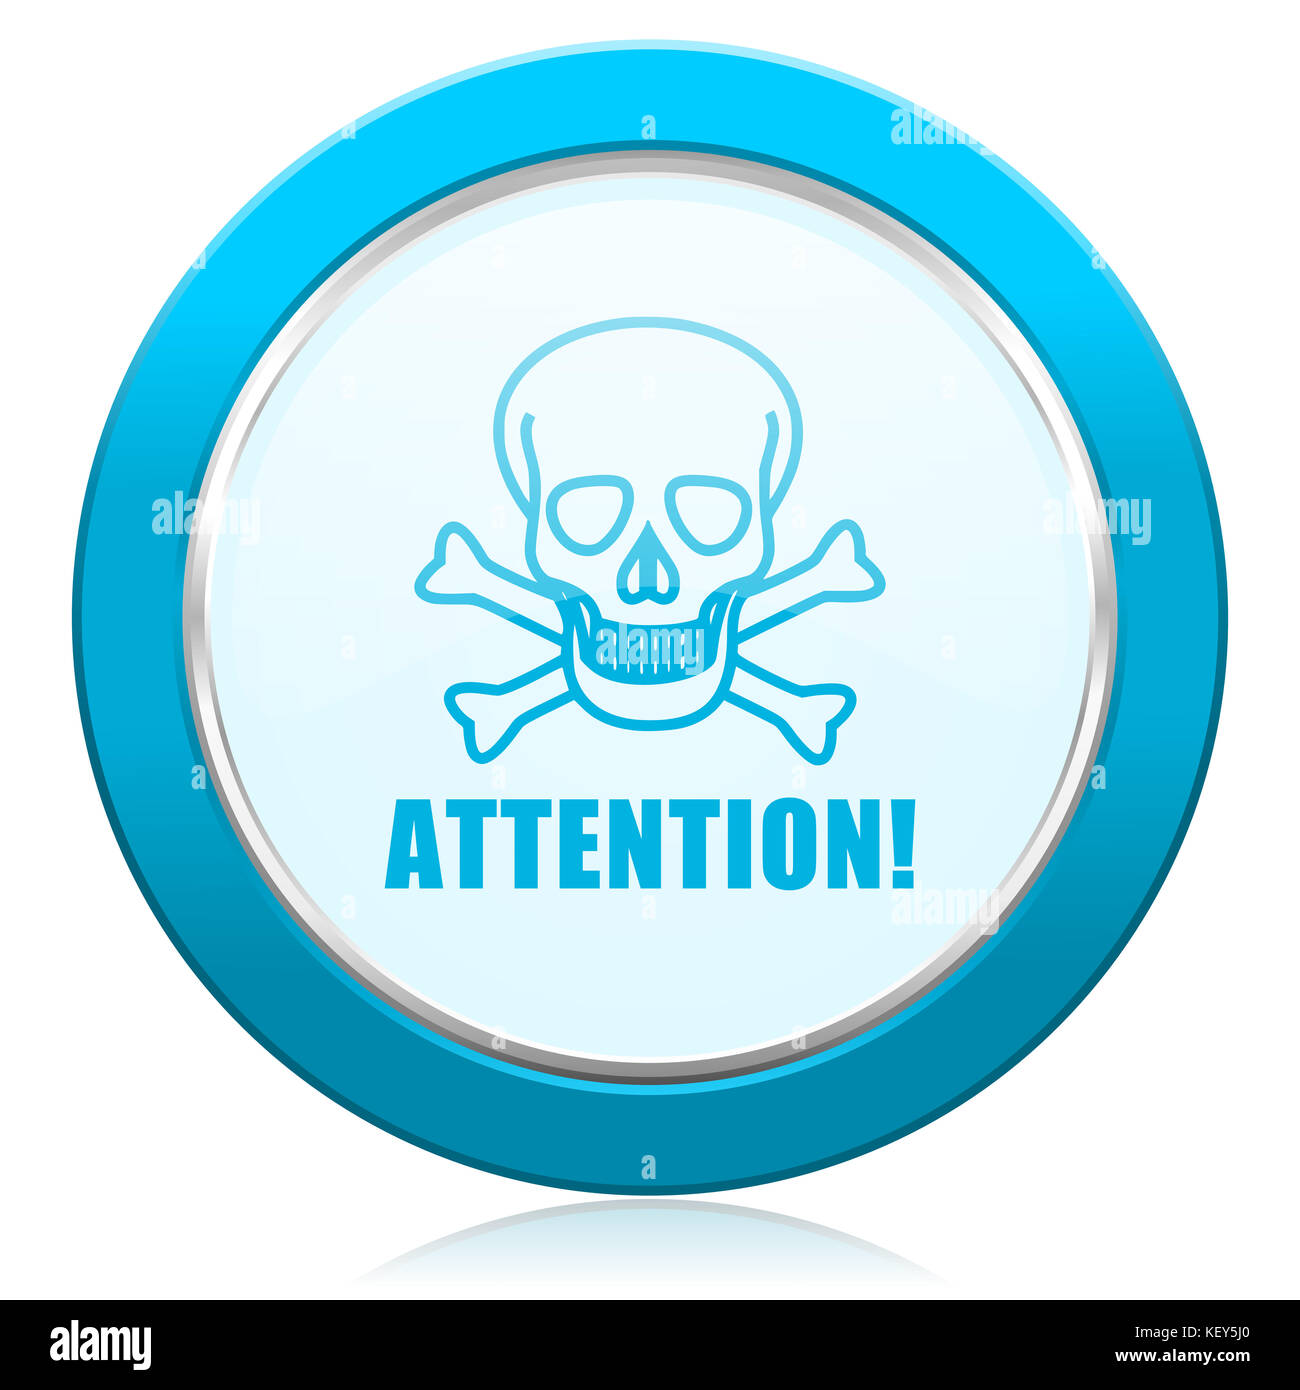 Attention skull blue chrome silver metallic border web icon. Round button for internet and mobile phone application - Stock Image